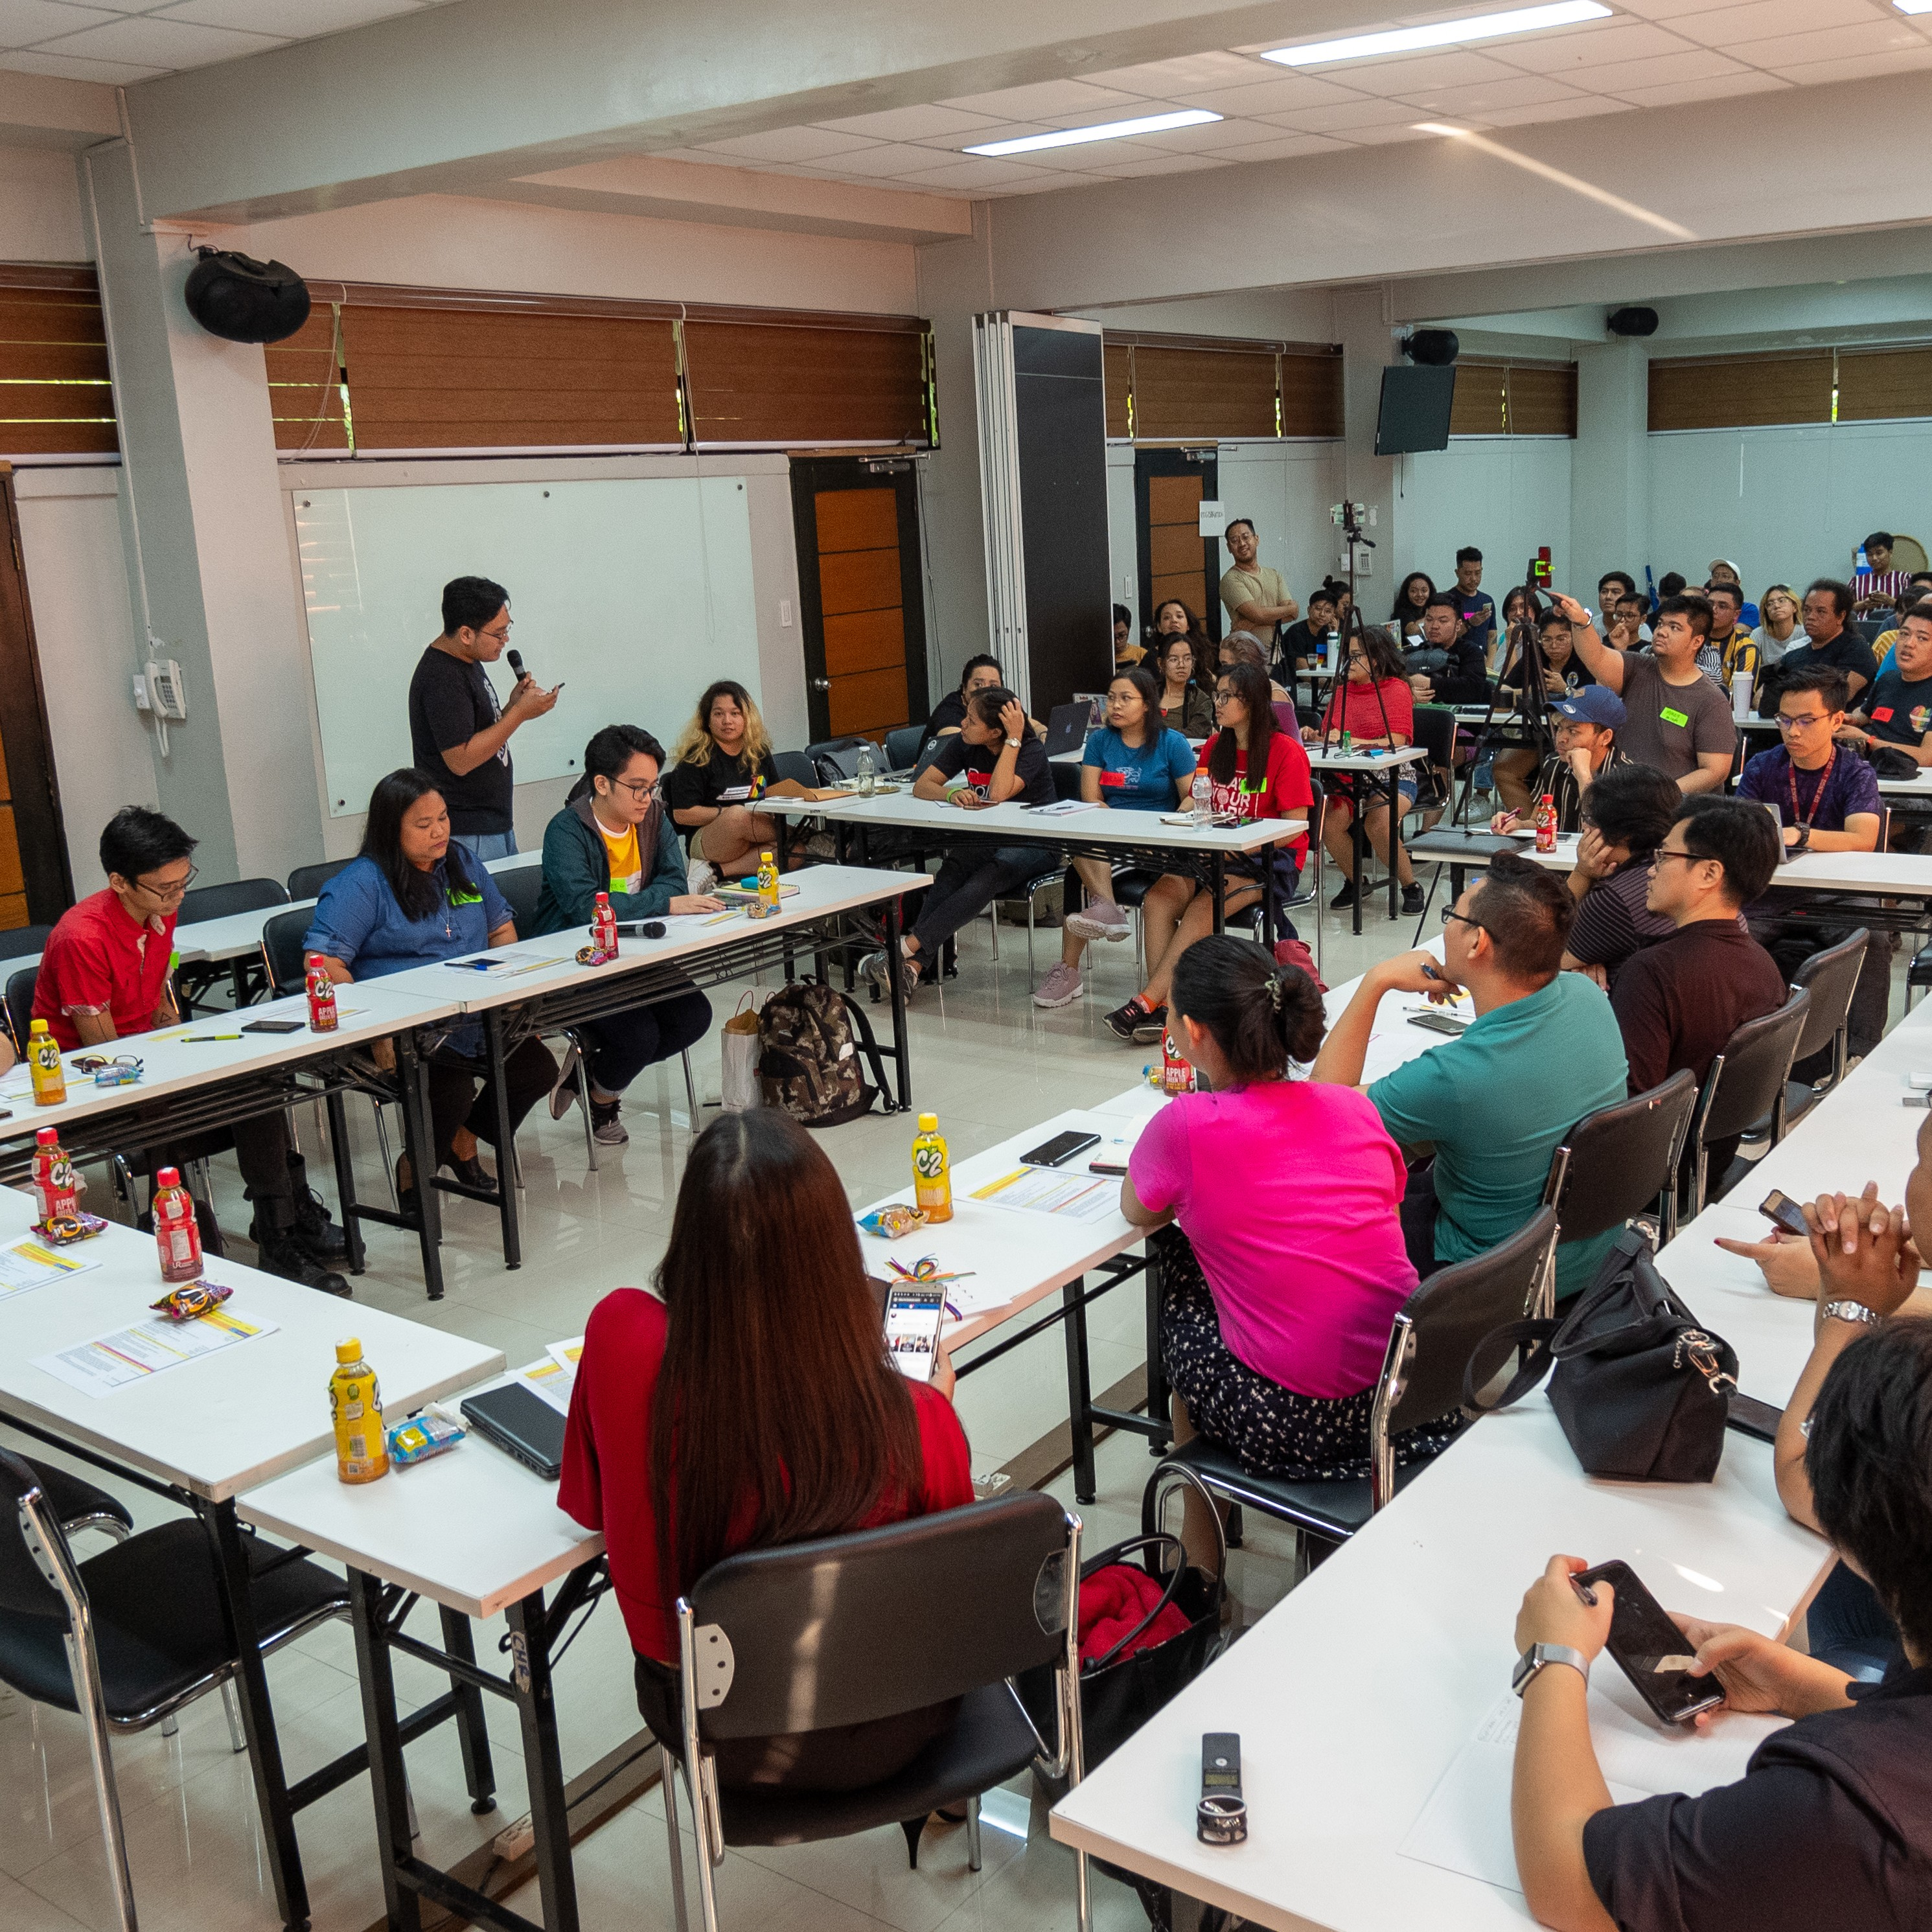 Image: The inside of a room full of attendees from the round table discussion 'How did Pride resistance in the Philippines start?' in 2019. Tables are arranged in a closed rectangle, occupied by LGBTQIA+ activists from various organizations, talking about the history of Pride in the Philippines.